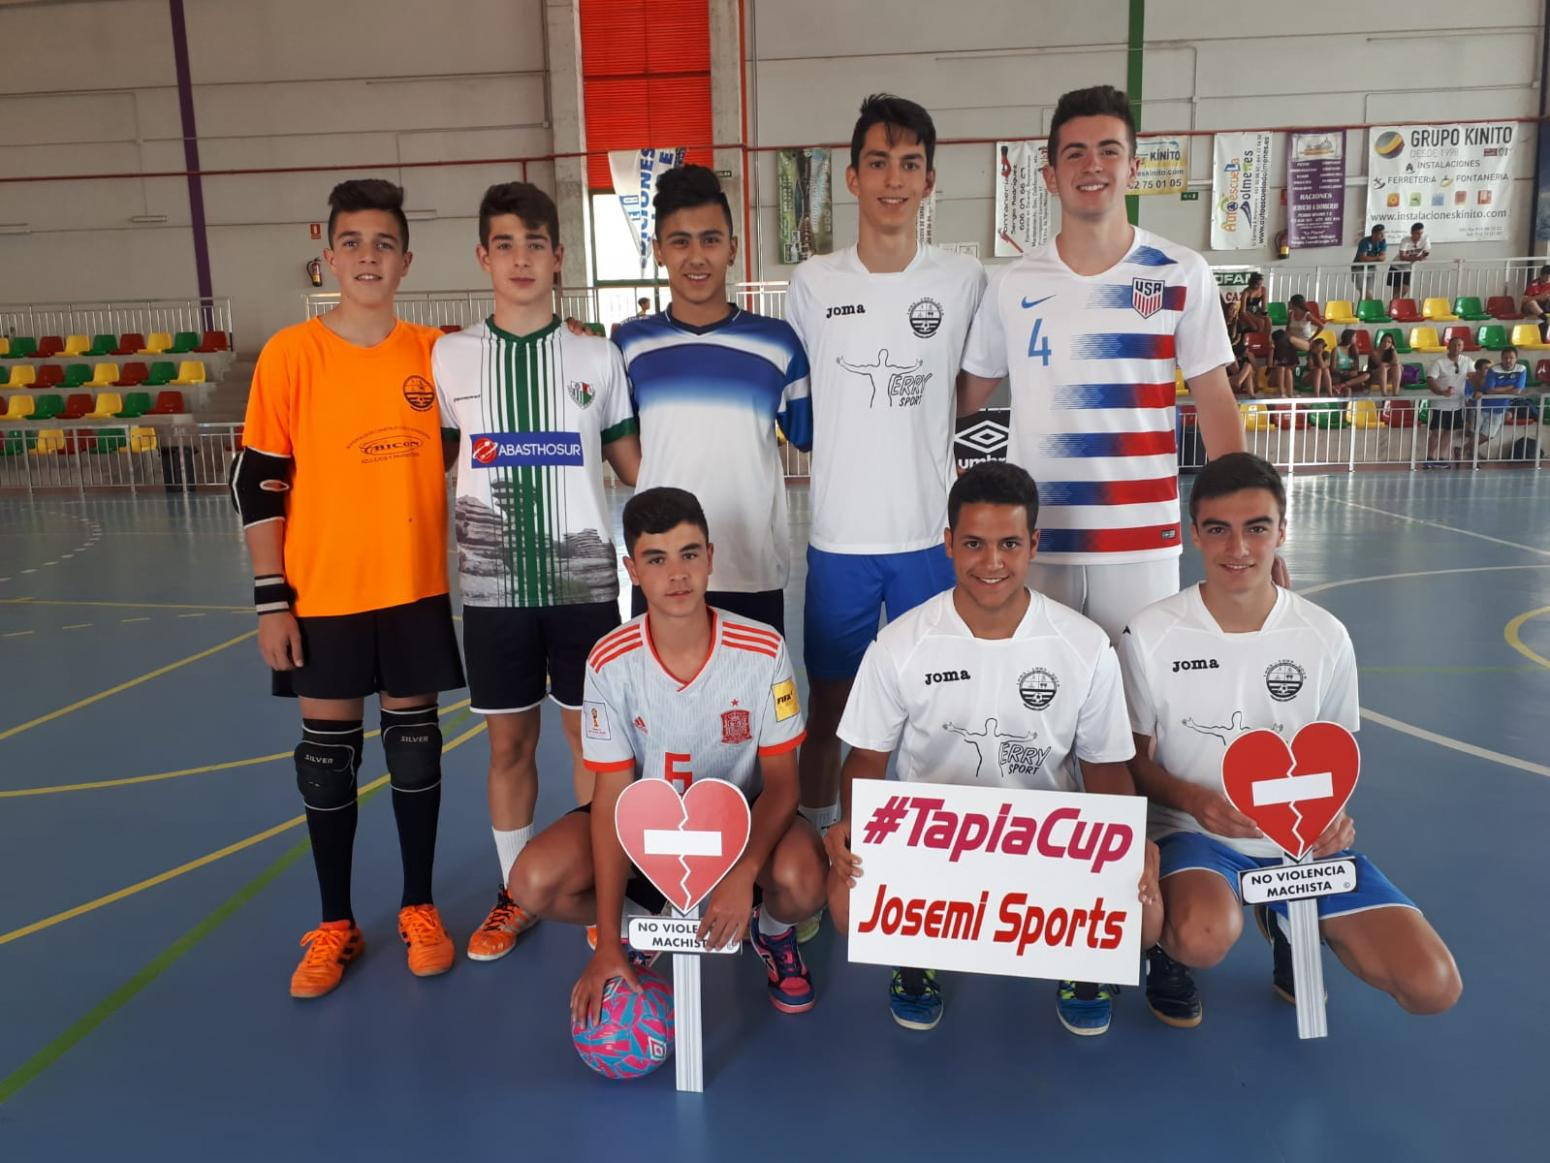 Torneo tapiacup